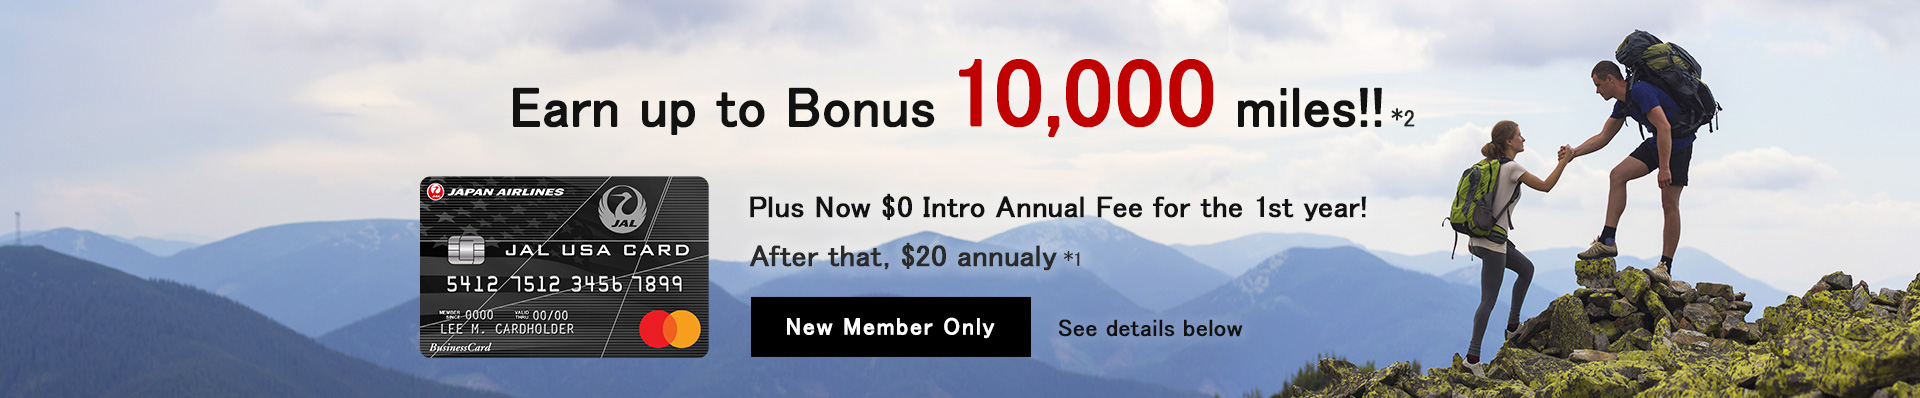 Earn up to Bonus 10,000 miles!! *2 Plus Now $0 Intro Annual Fee for the 1st year! After that, $20 annualy *1